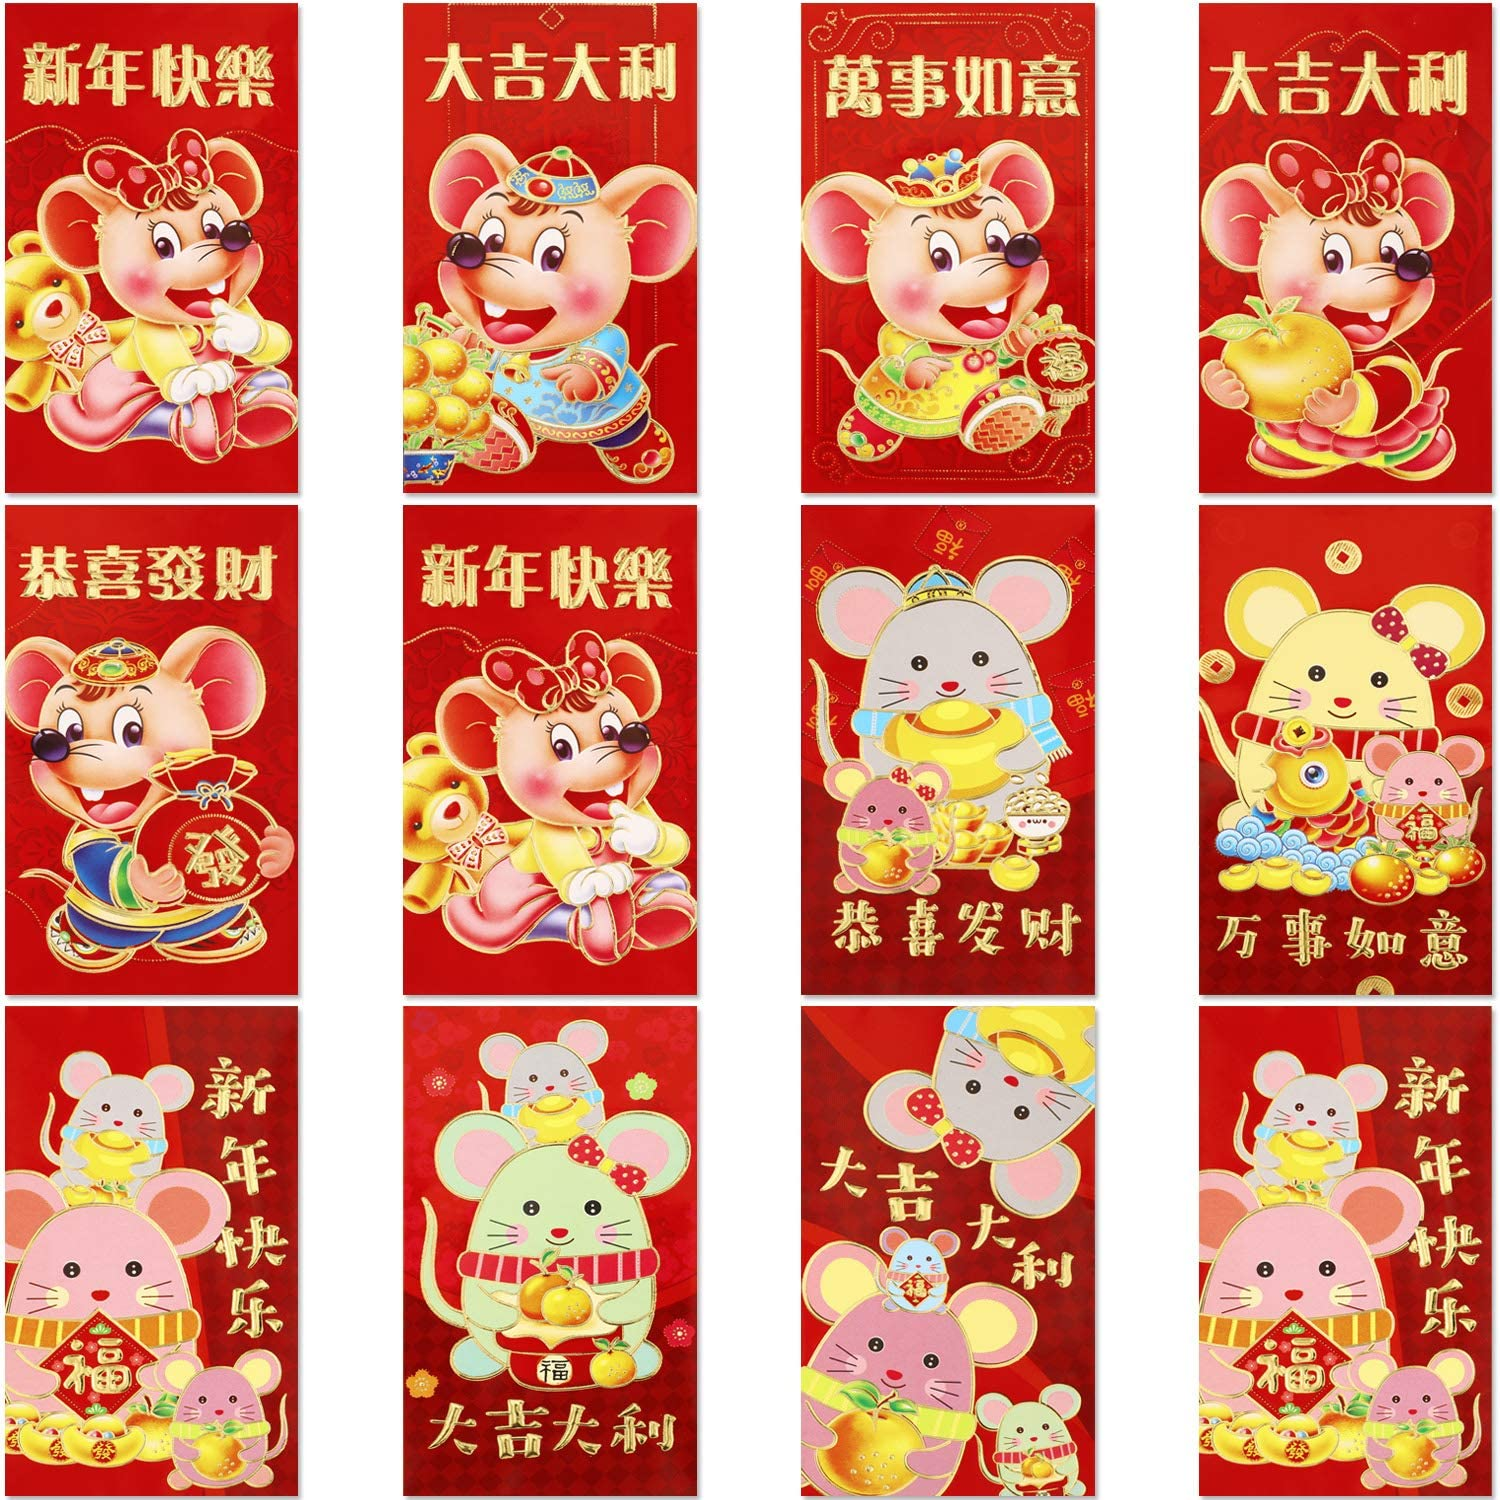 60 Pieces Chinese Red Envelopes Year of 2020 Chinese Lucky Envelopes Rat Year Hongbao with Rat Pattern for Spring Festival Lunar New Year Wedding, 10 Designs, 3.5 x 6.5 Inches (Style Set 2)